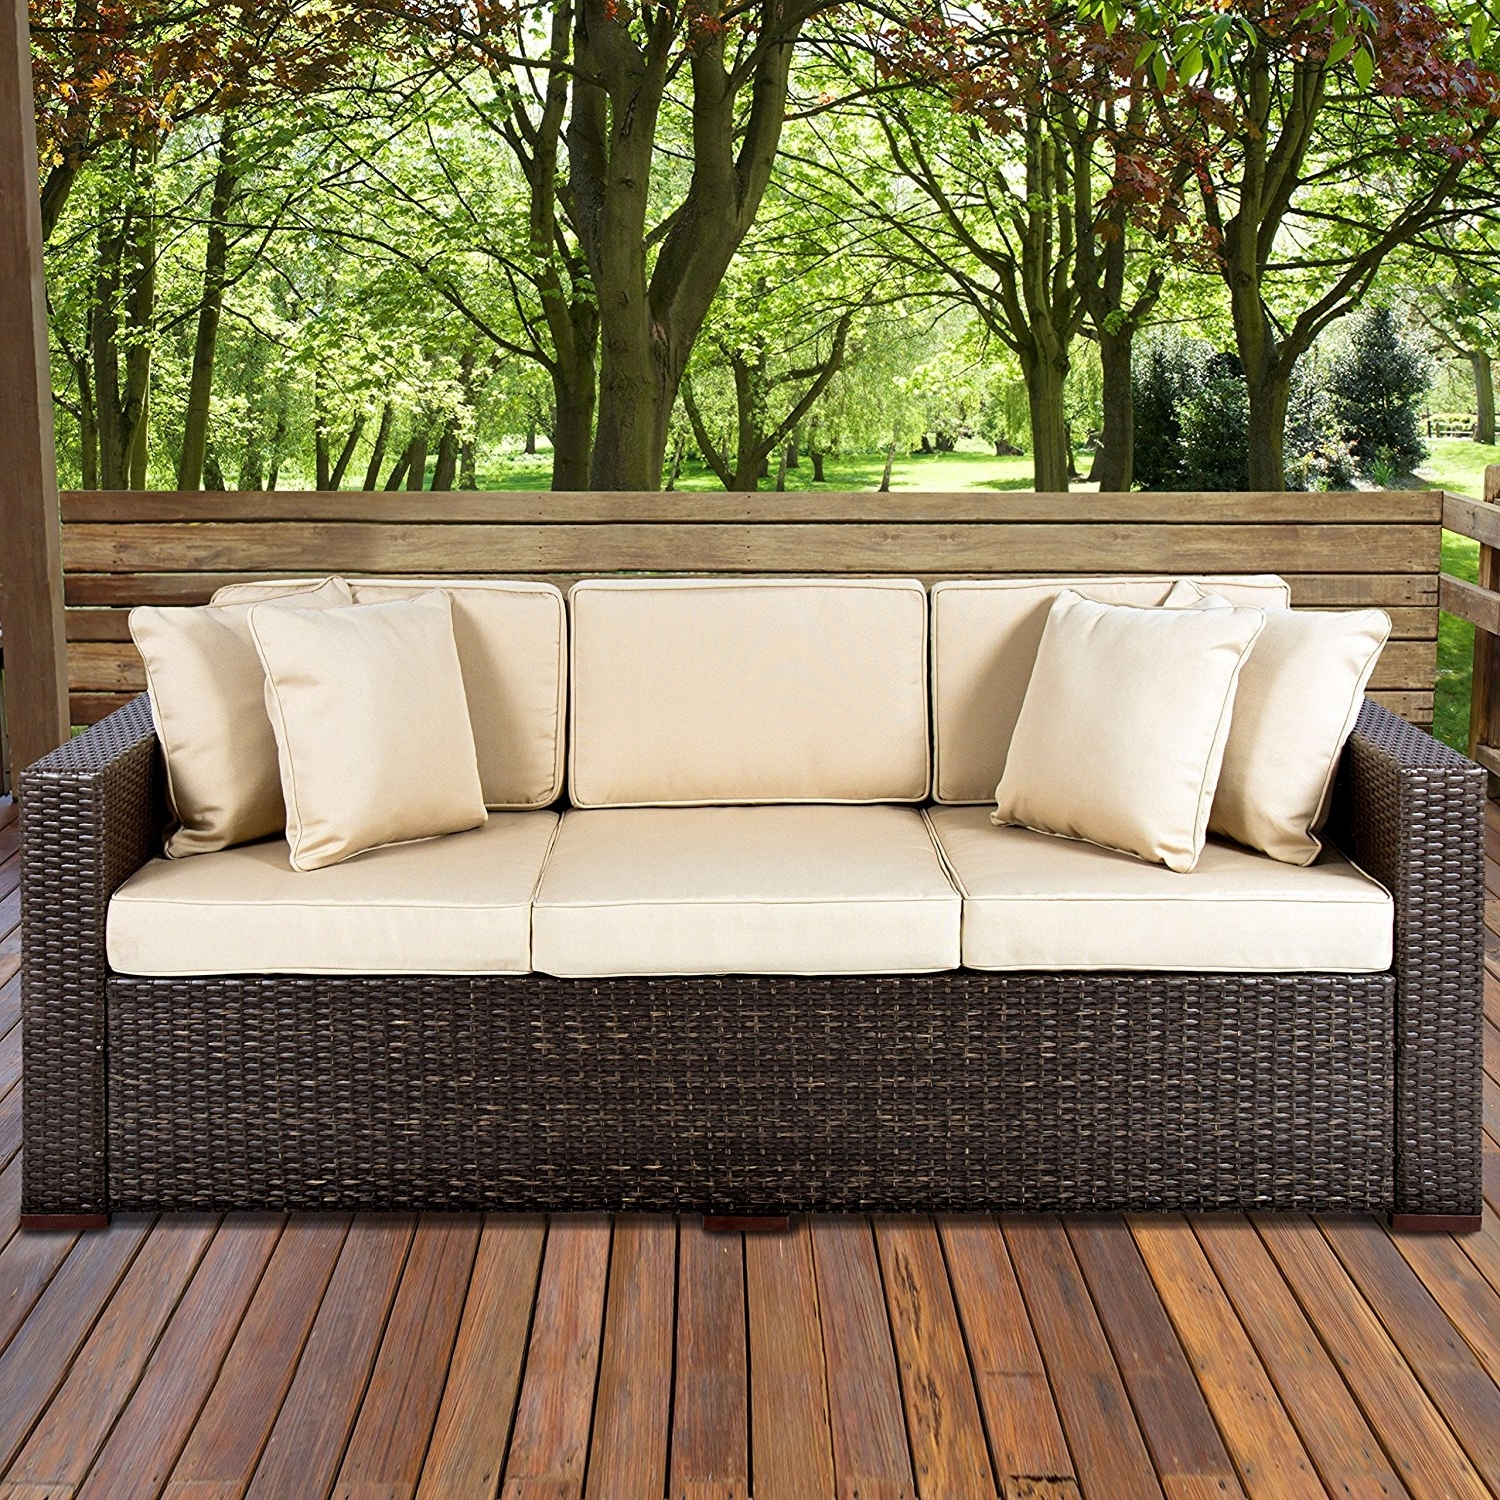 Sofa : Patio Furniture White Wicker Outdoor Furniture Wicker With Latest Vancouver Bc Canada Sectional Sofas (View 11 of 15)